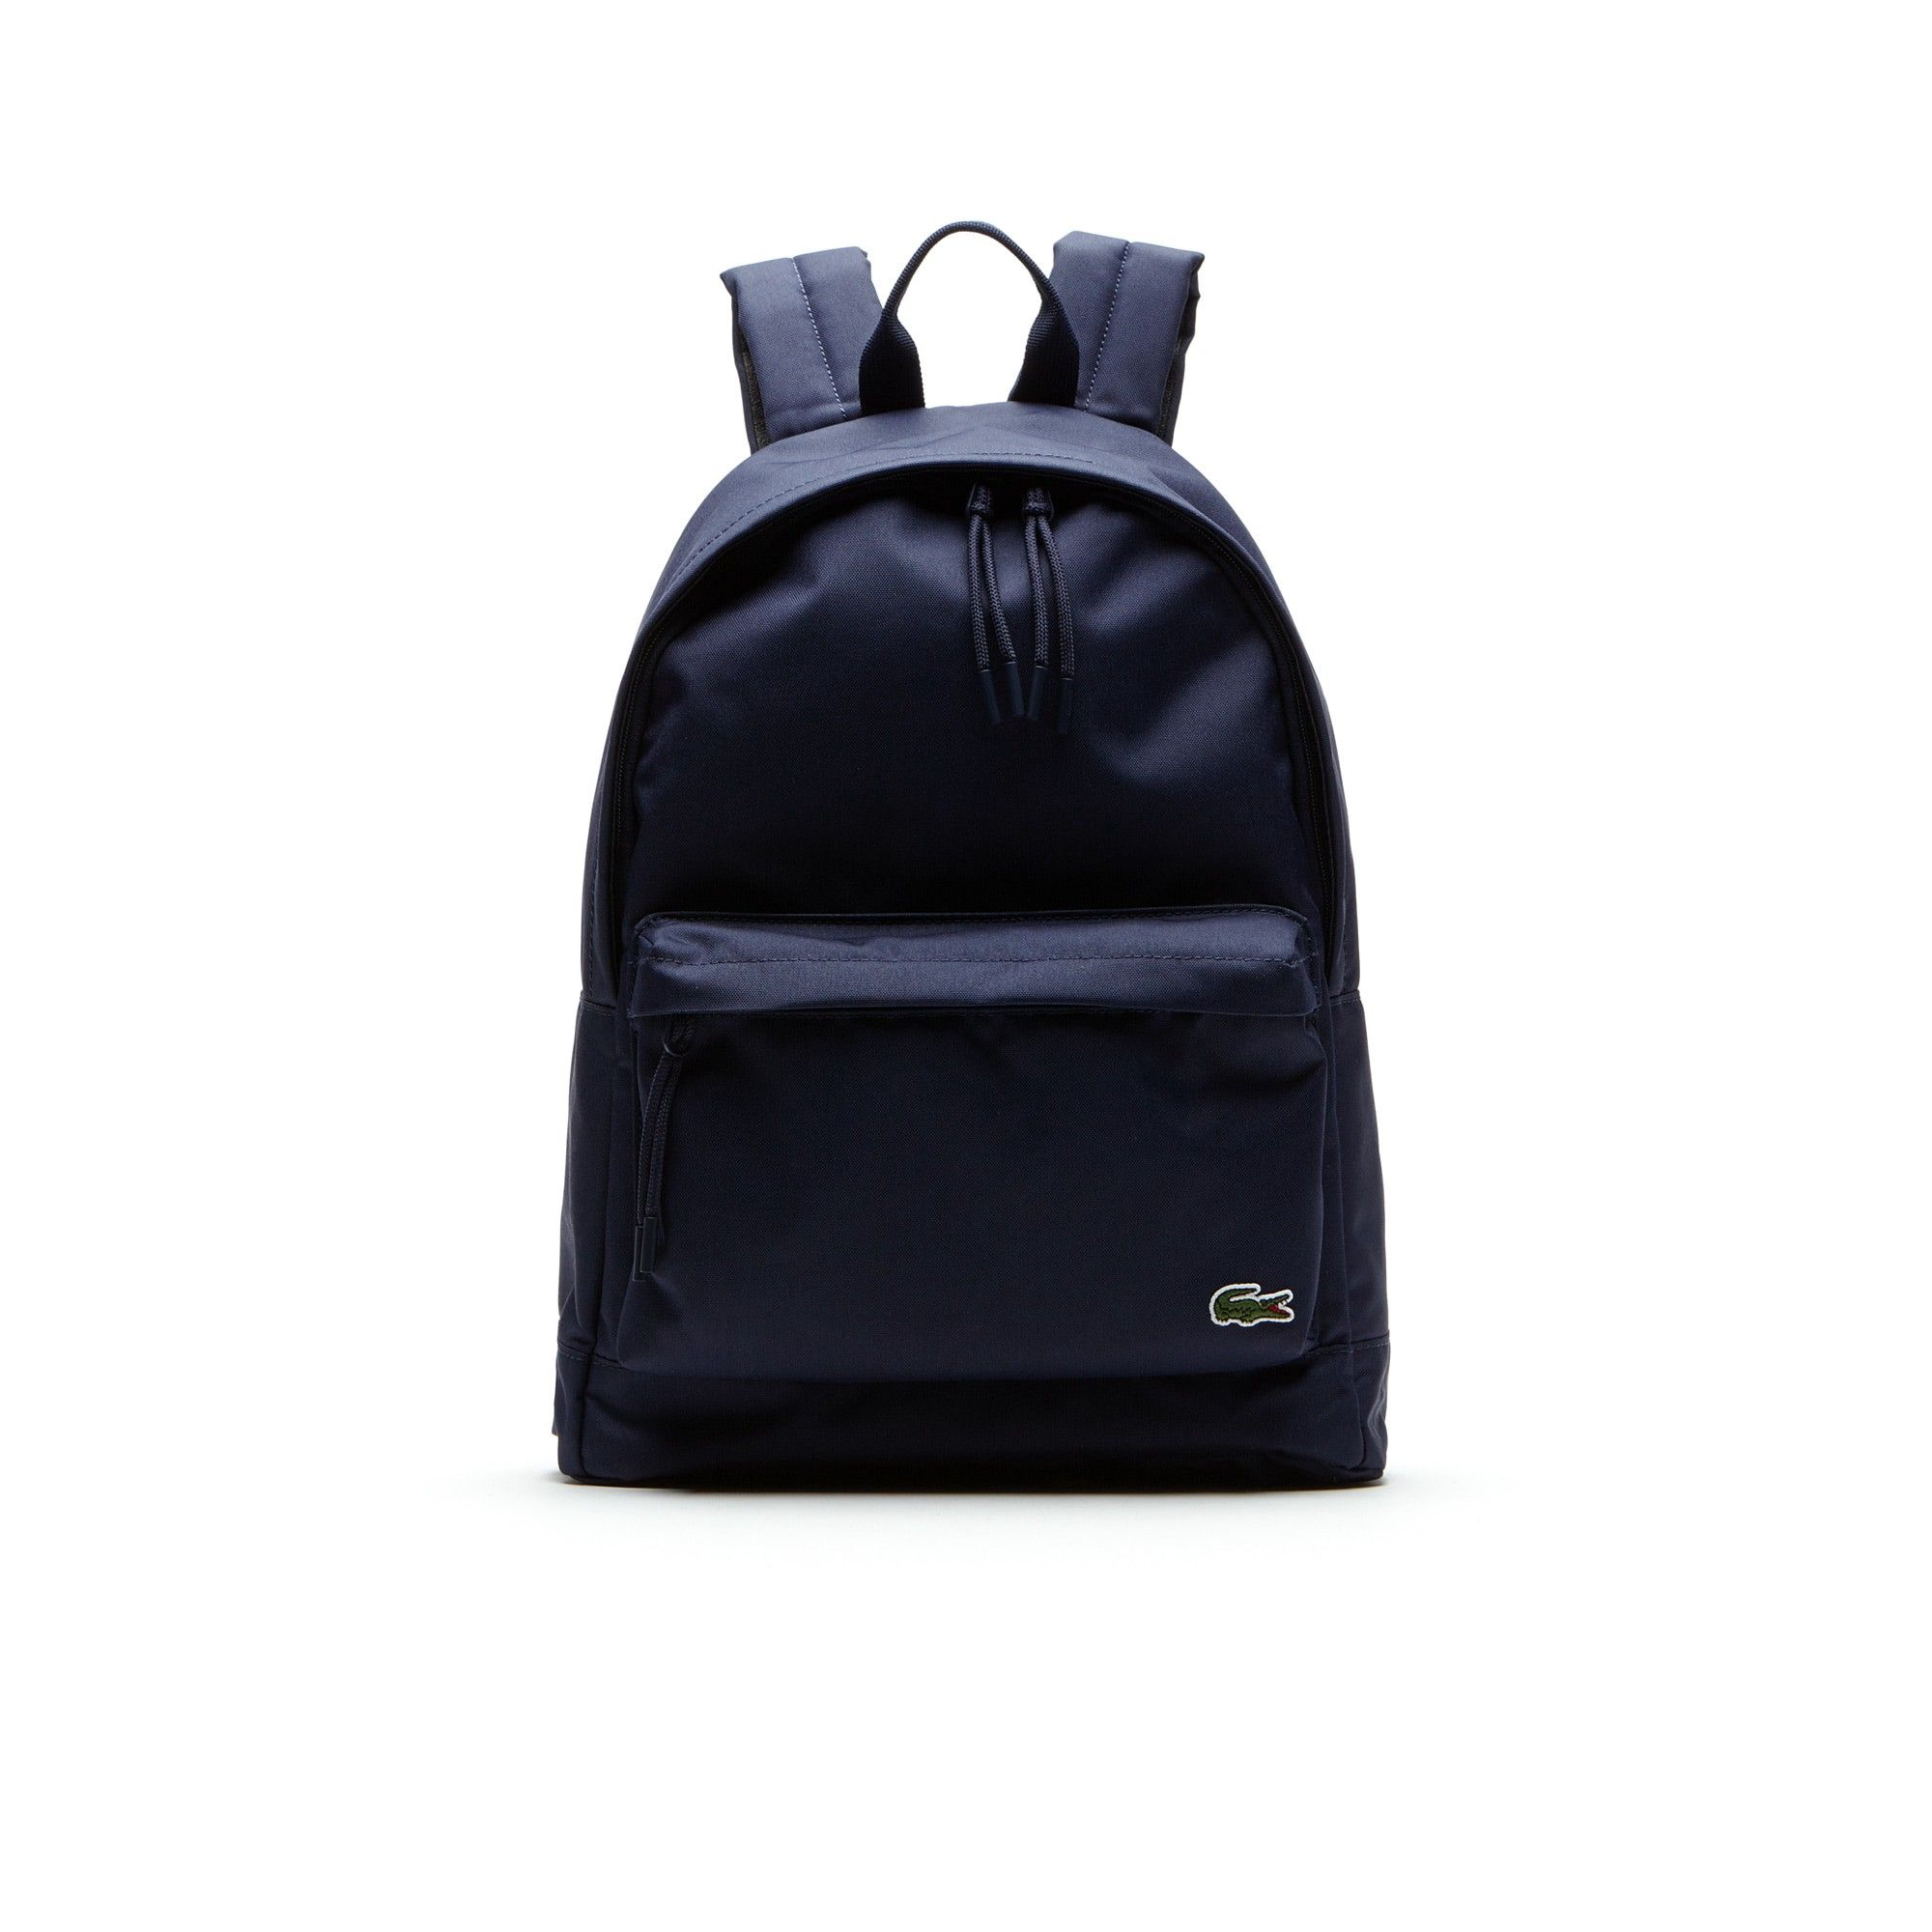 59adebae9523 LACOSTE Men s Neocroc backpack in canvas - peacoat.  lacoste  bags  canvas   backpacks  polyester